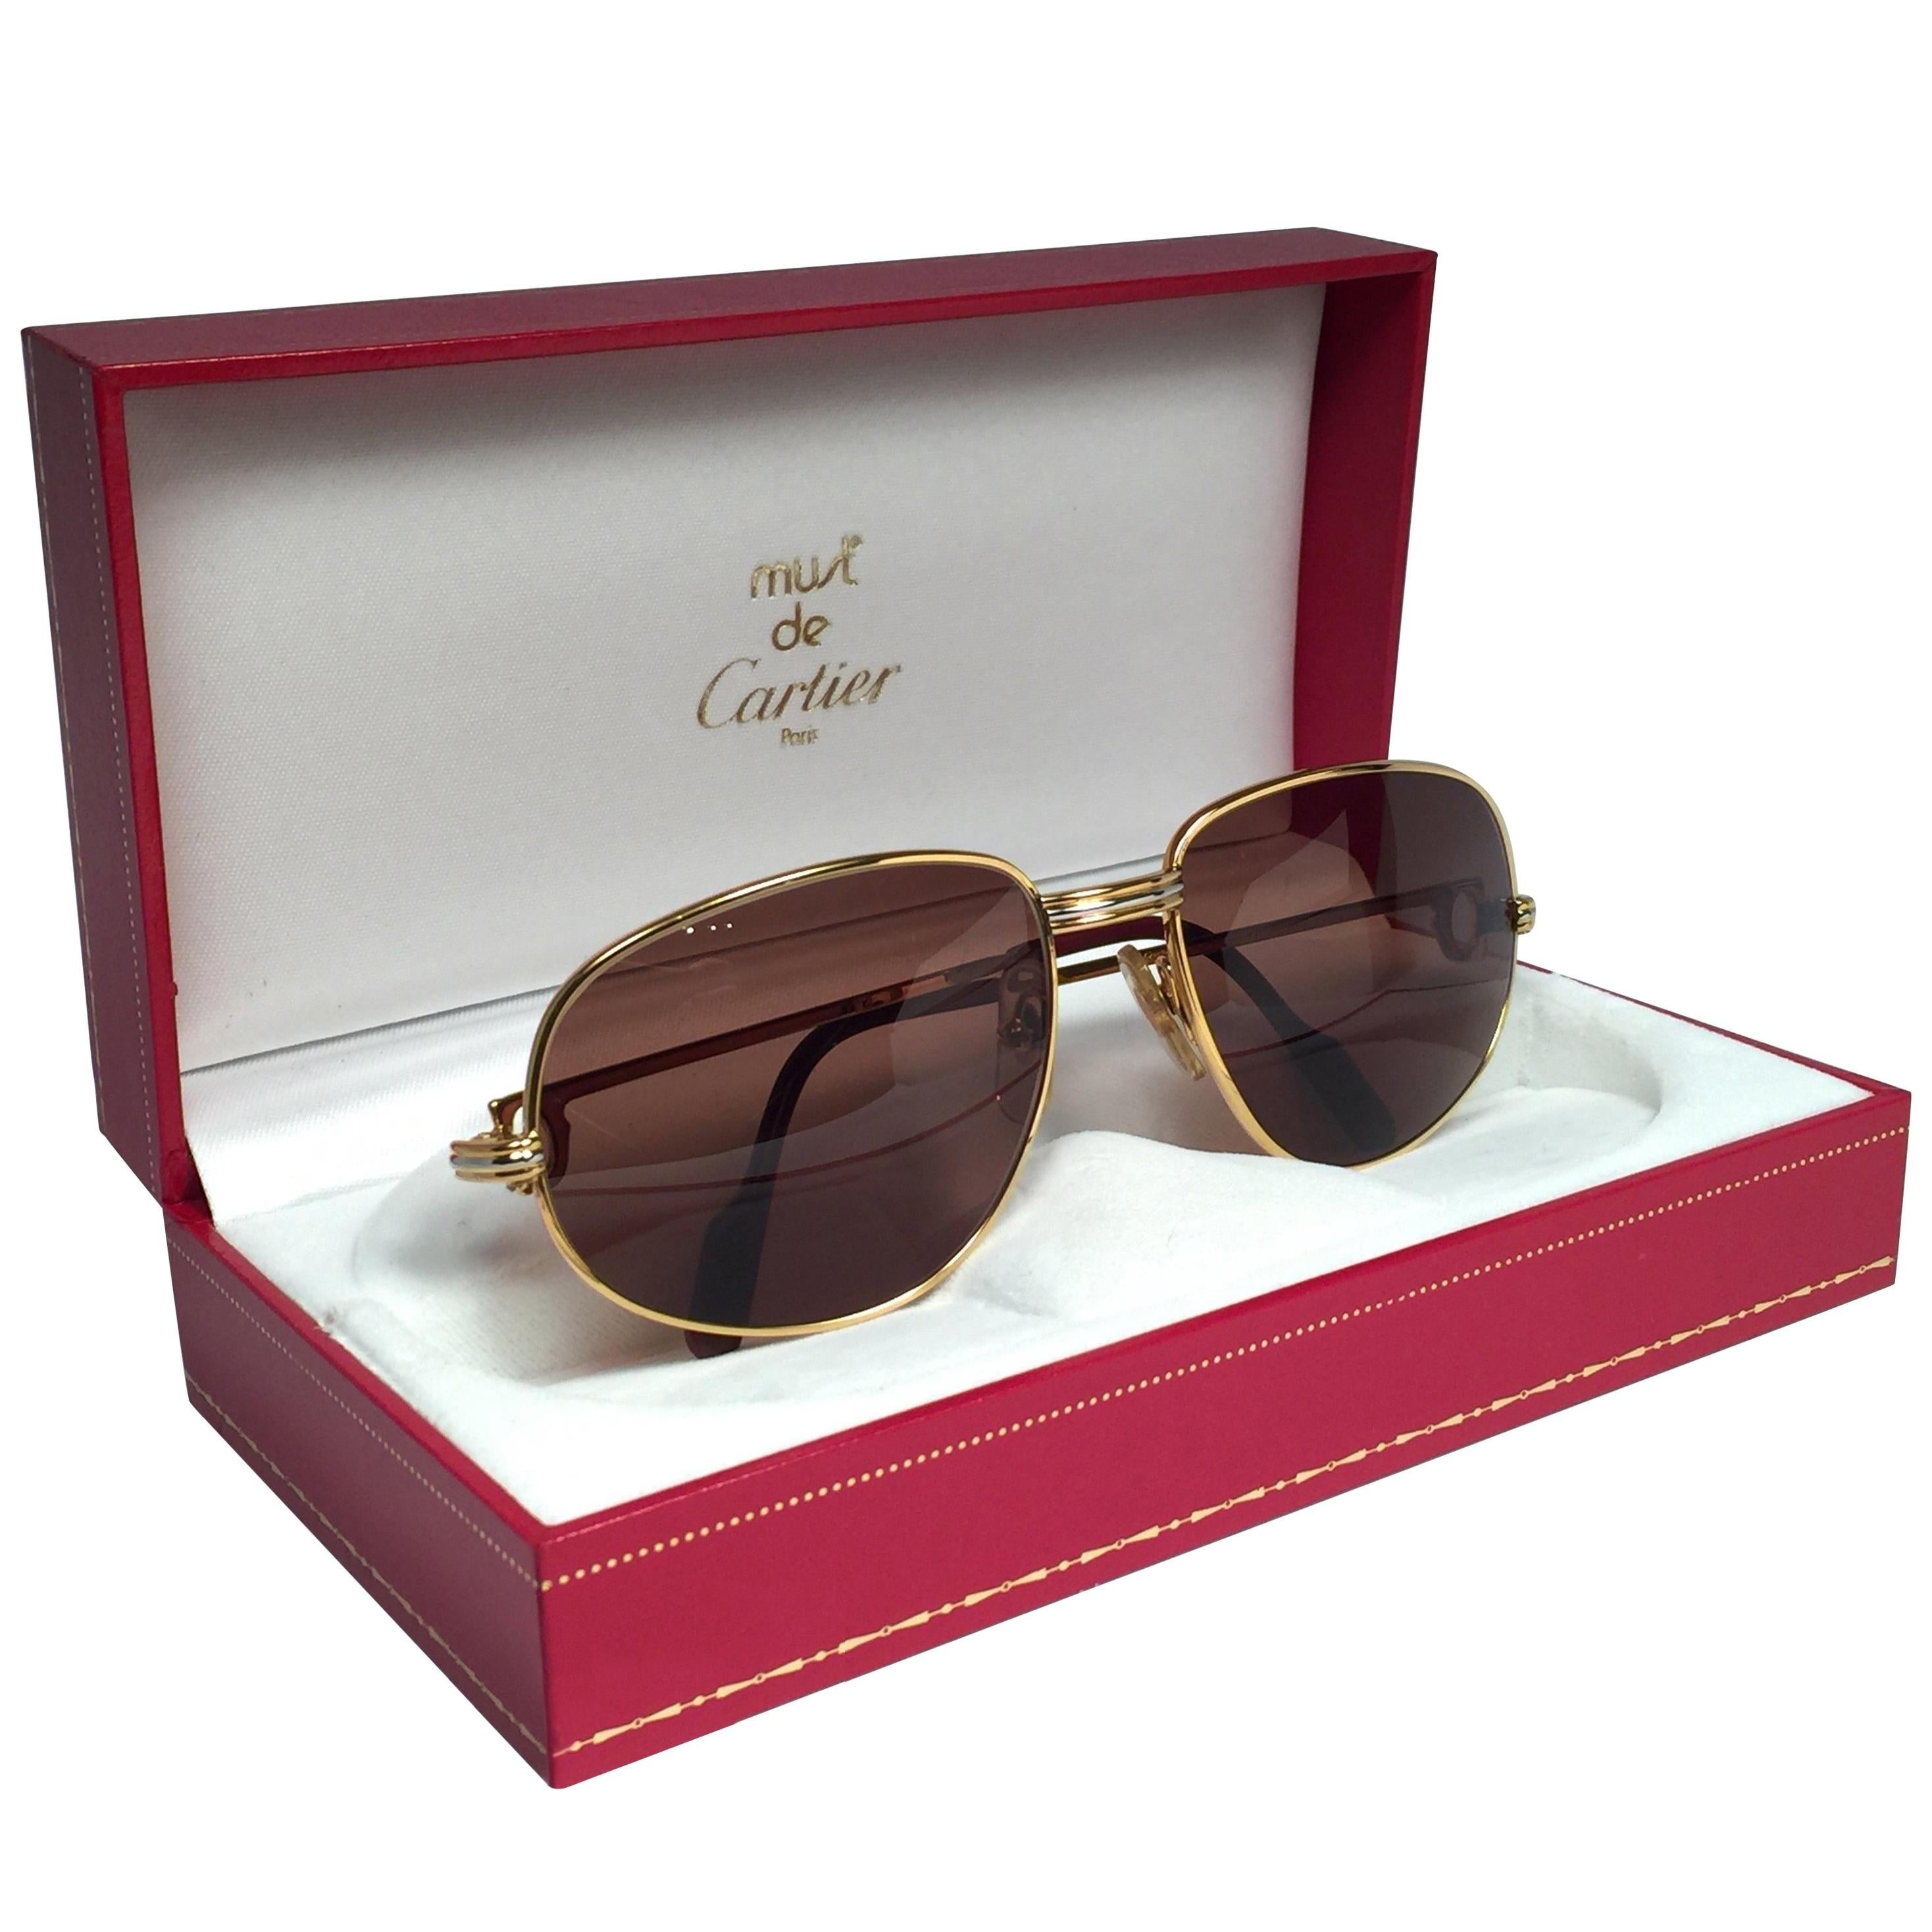 0194f702a71 New Cartier Giverny Gold and Wood 53 22 Full Set Brown Lens France  Sunglasses at 1stdibs